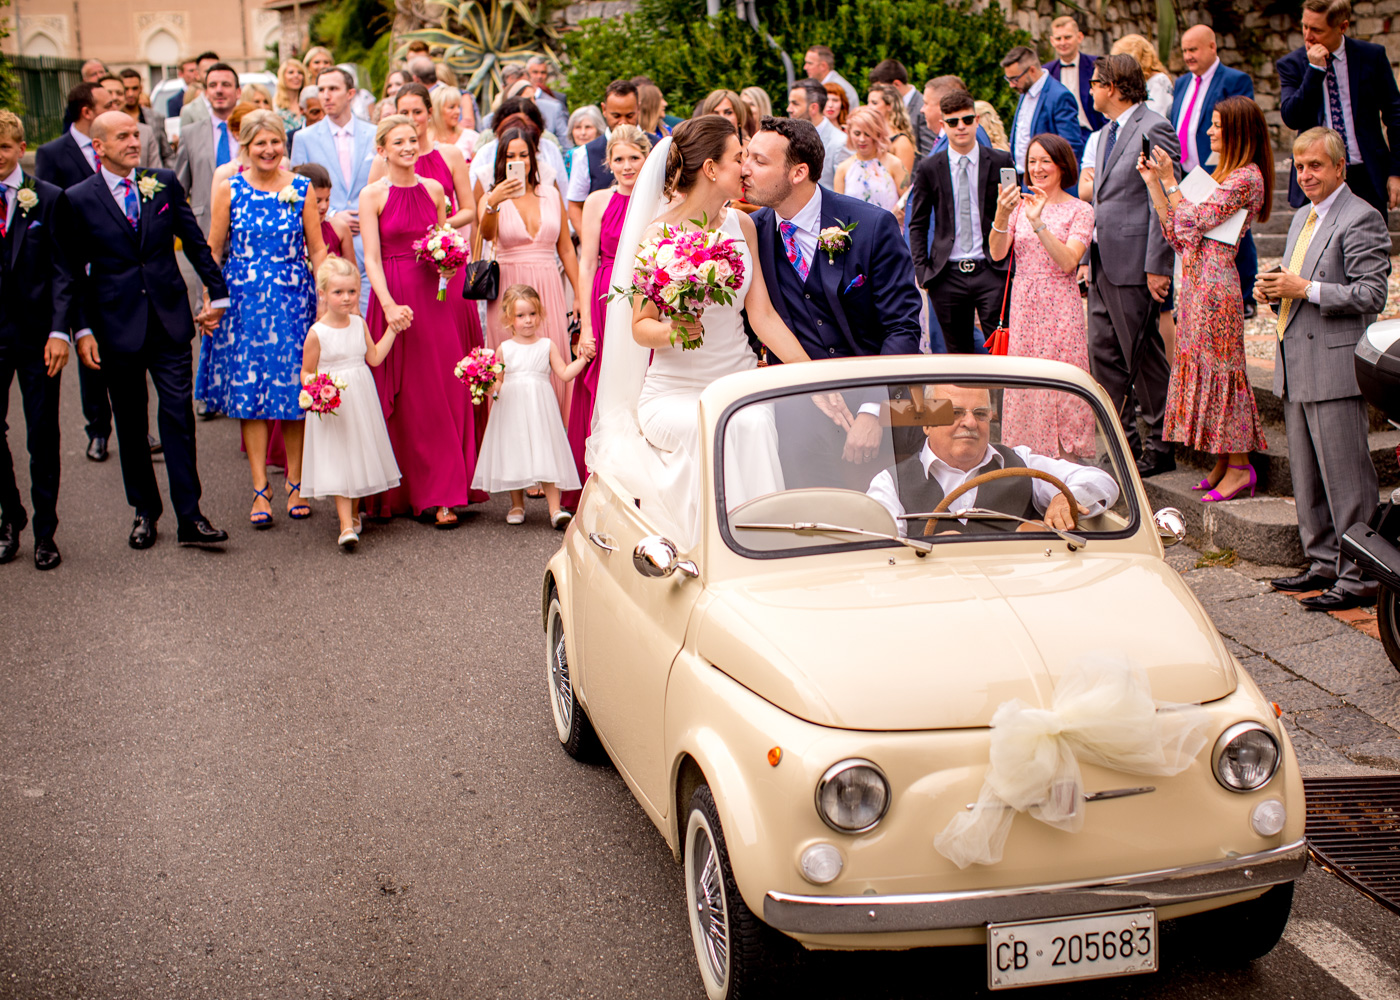 Lovely Wedding Taormina-vintage-car-500-fiat-bride-groom